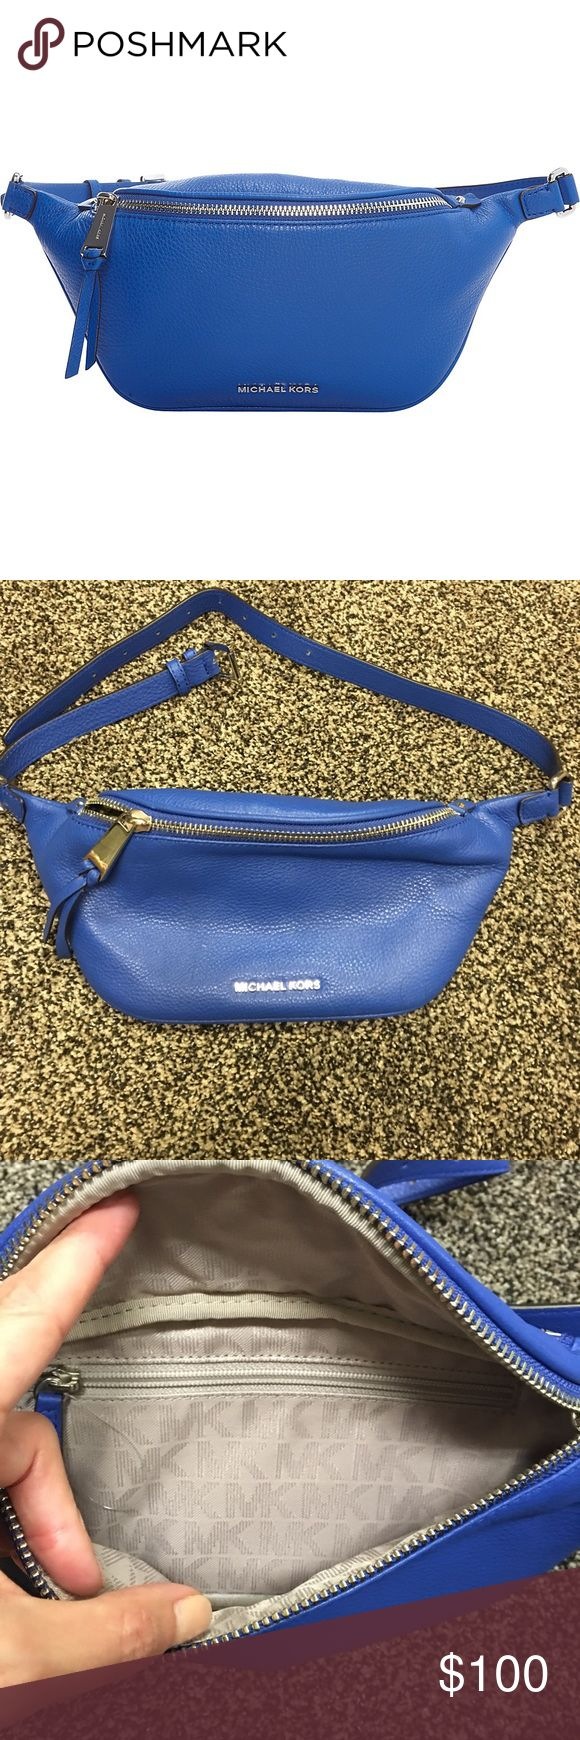 Michael Kors Blue Zip Belt Bag used once Blue leather stylish fanny pack with inside zipper pocket Michael Kors Bags Travel Bags